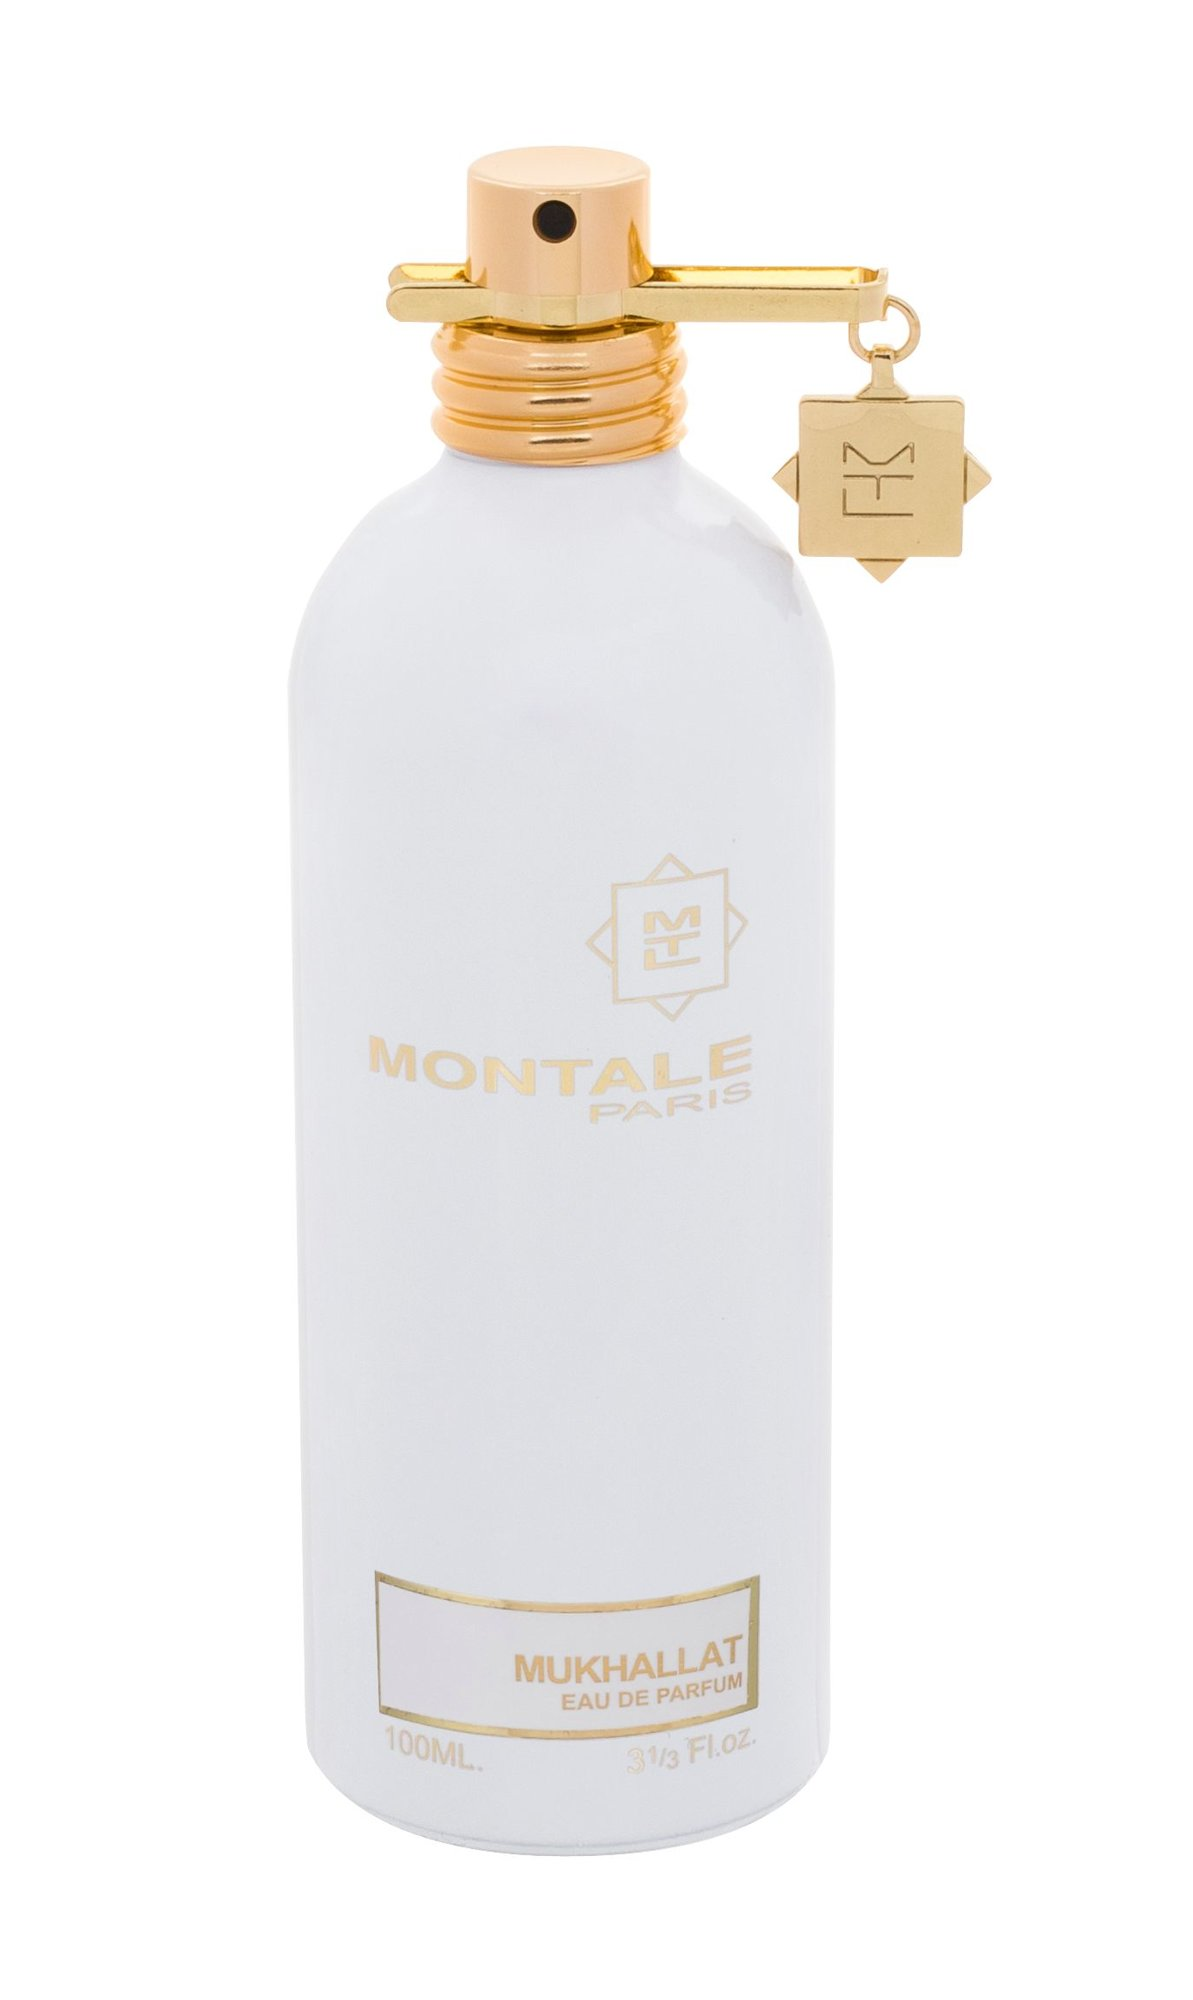 Montale Paris Mukhallat, edp 100ml